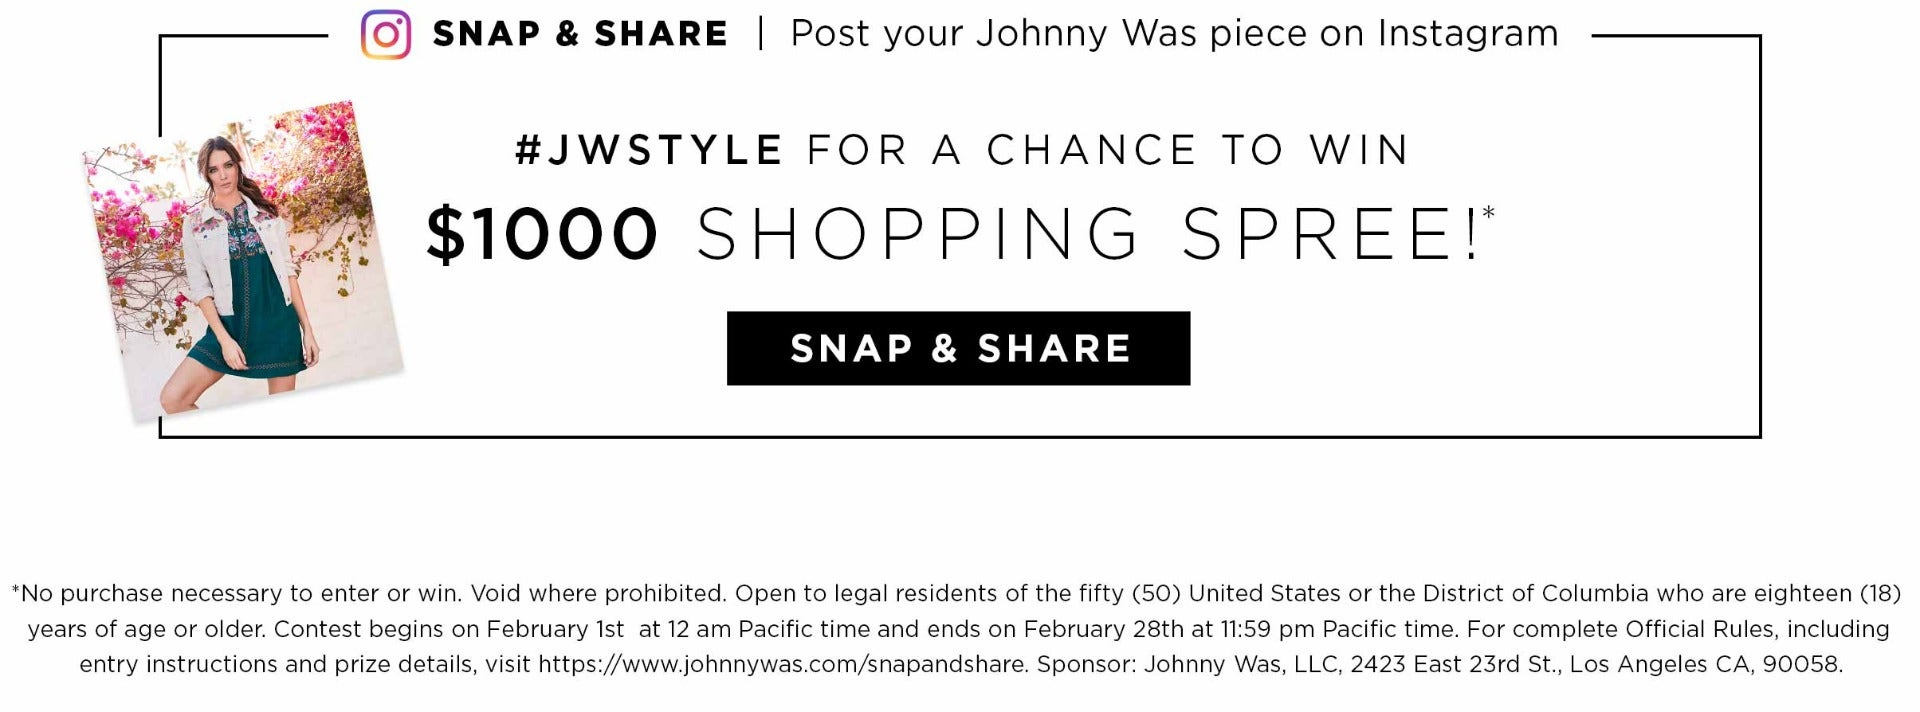 Snap & Share - | Post Your Johnny was Piece on Instagram - #JWSTYLE for a Chance to win - $1000 Shopping Spree!* - Snap & Share